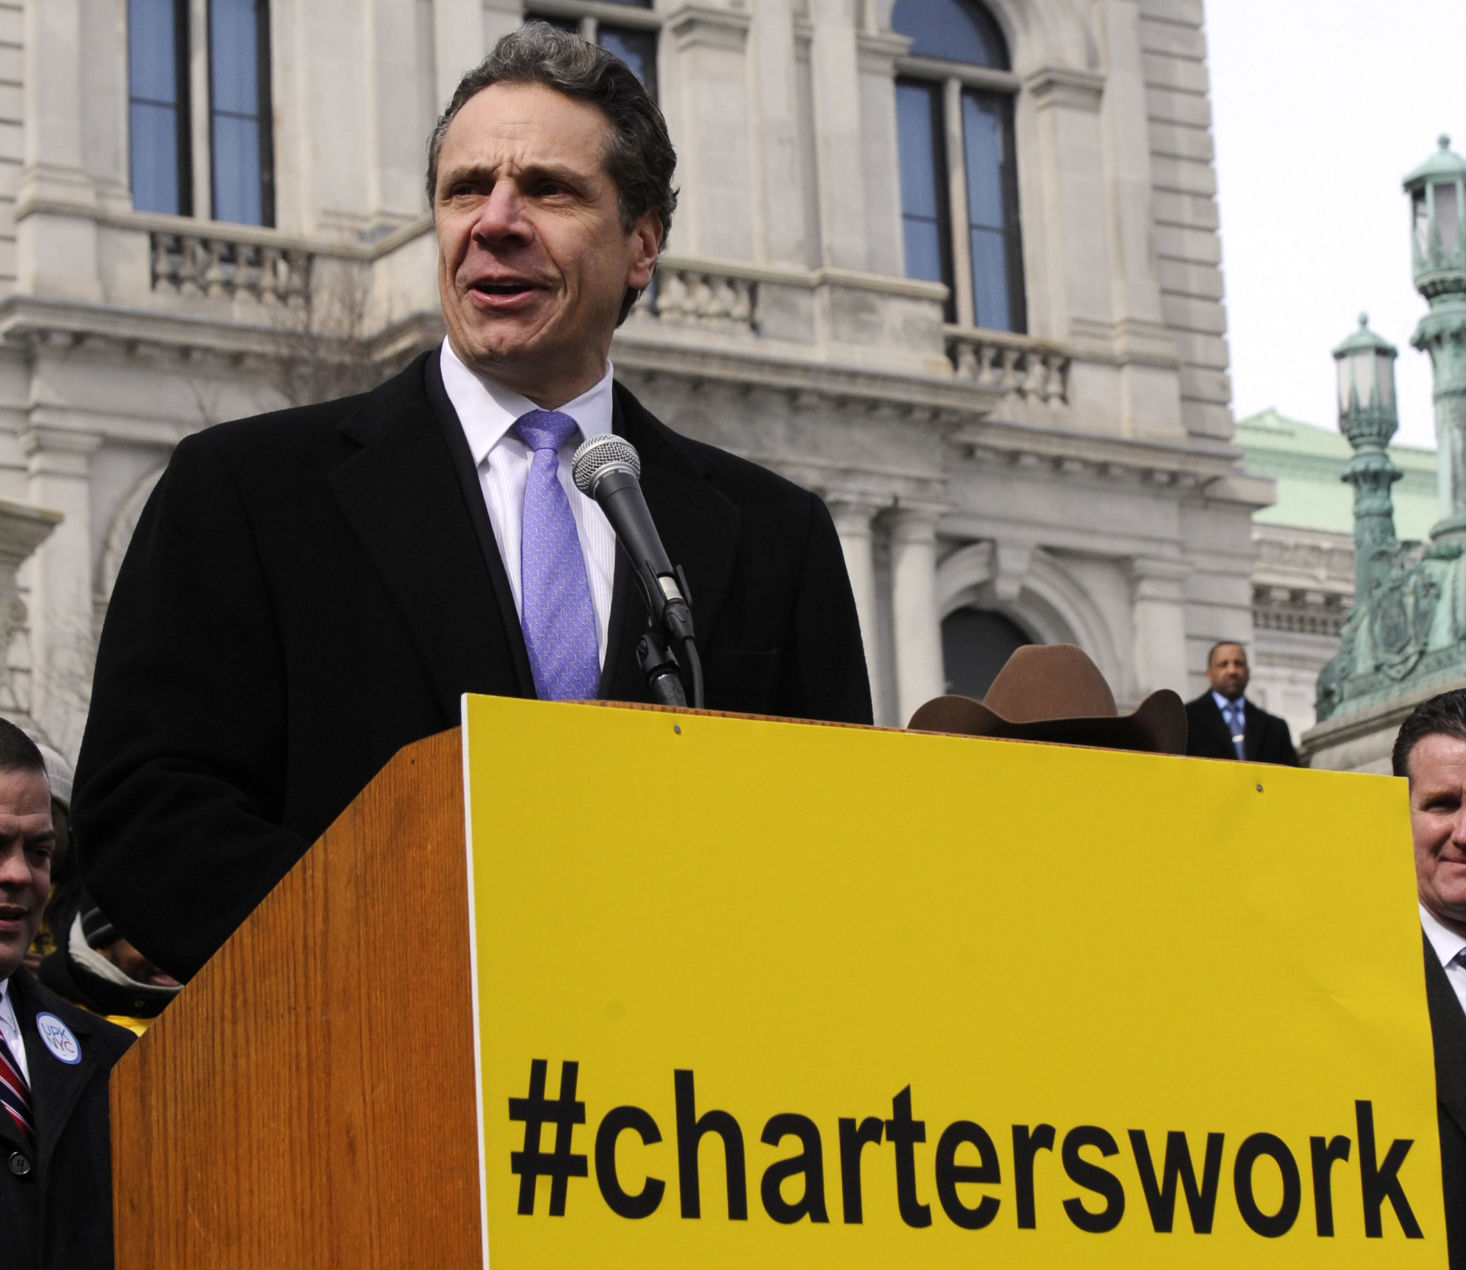 cuomo charter schools ap img 0